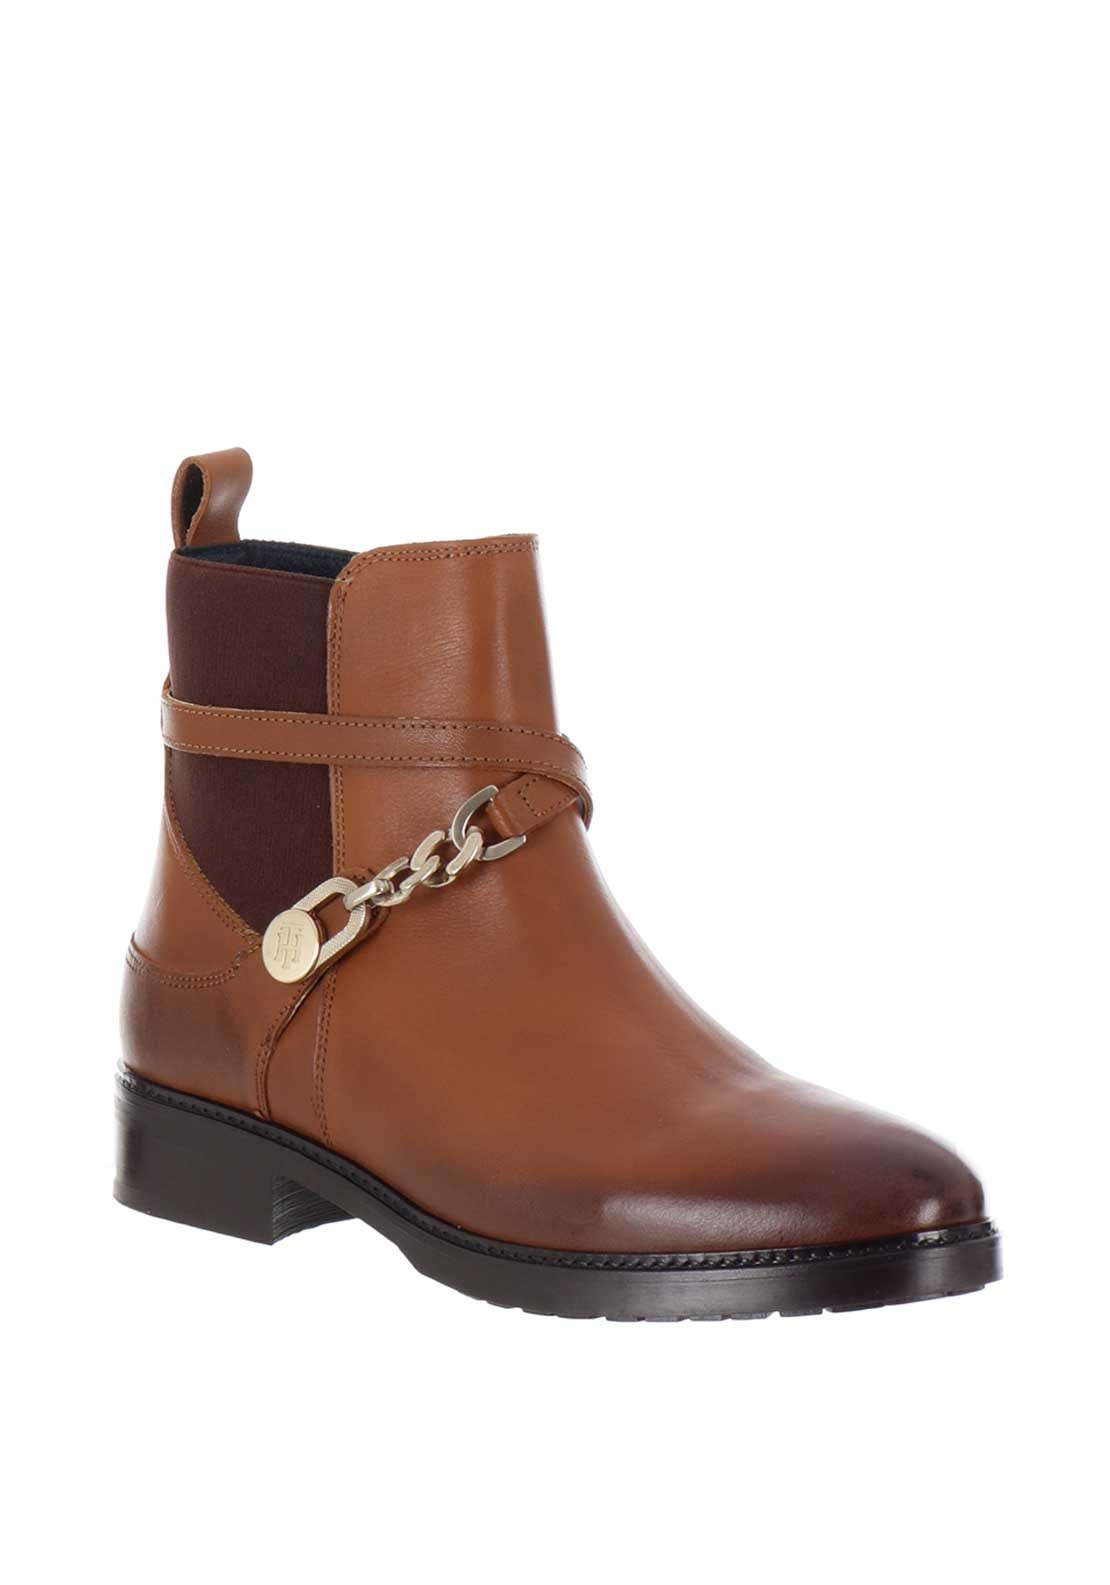 attractive designs low price online for sale Tommy Hilfiger Womens Chain Chelsea Boots, Tan